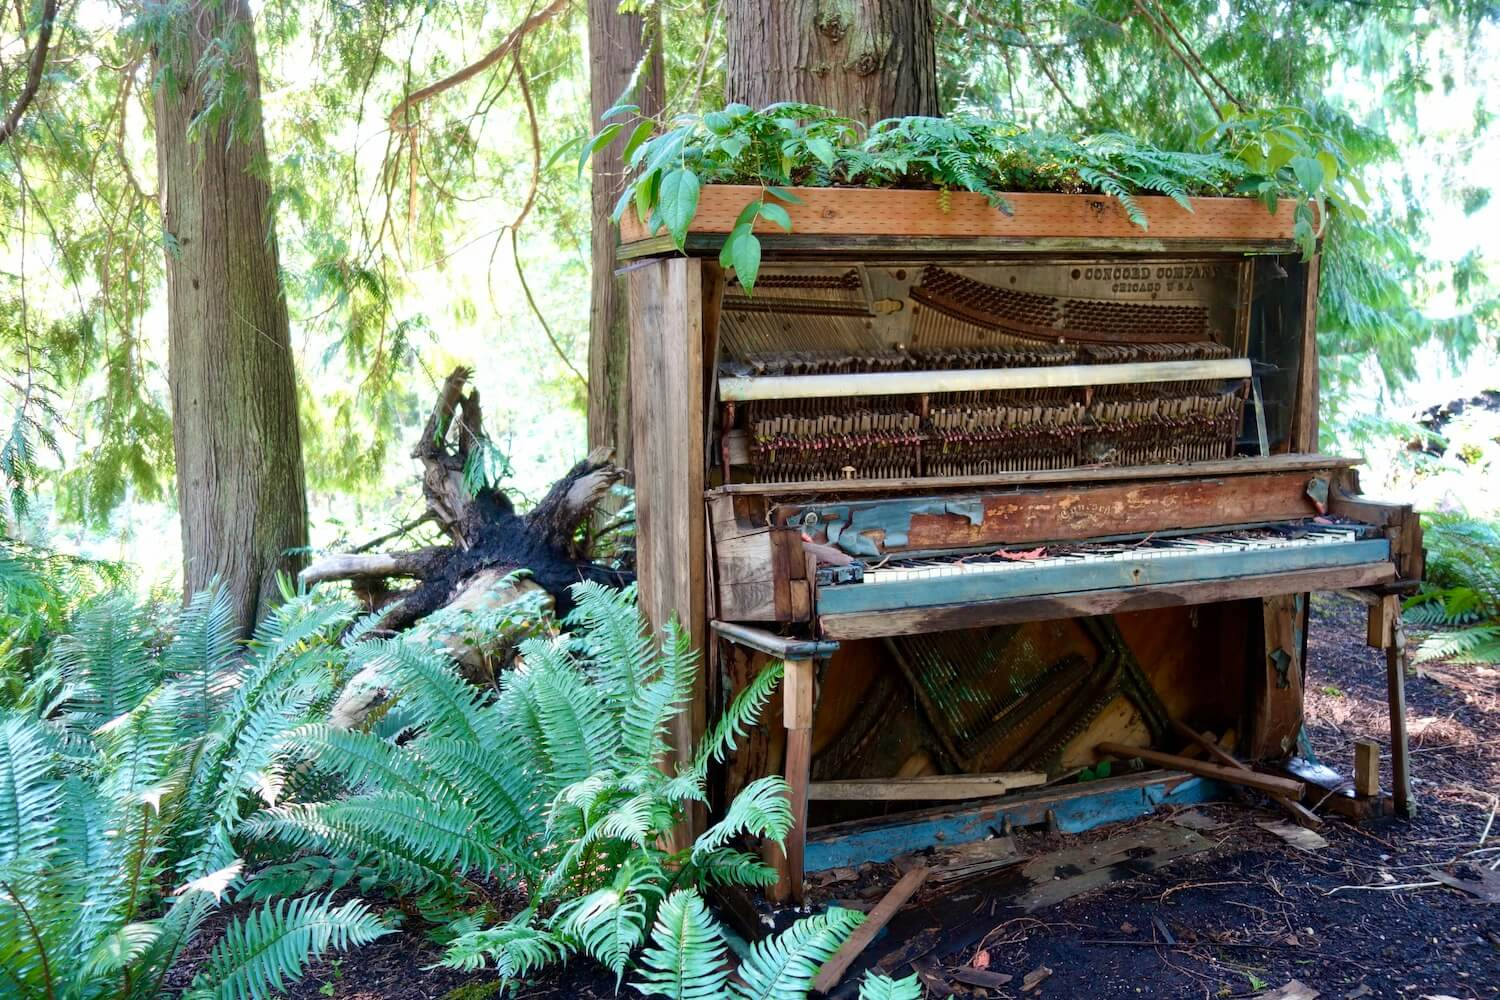 This old piano sits under the canopy of a beautiful fern garden on the Kitsap Peninsula in Washington State. The piano is falling apart and seeming to be absorbed into the rich forest.